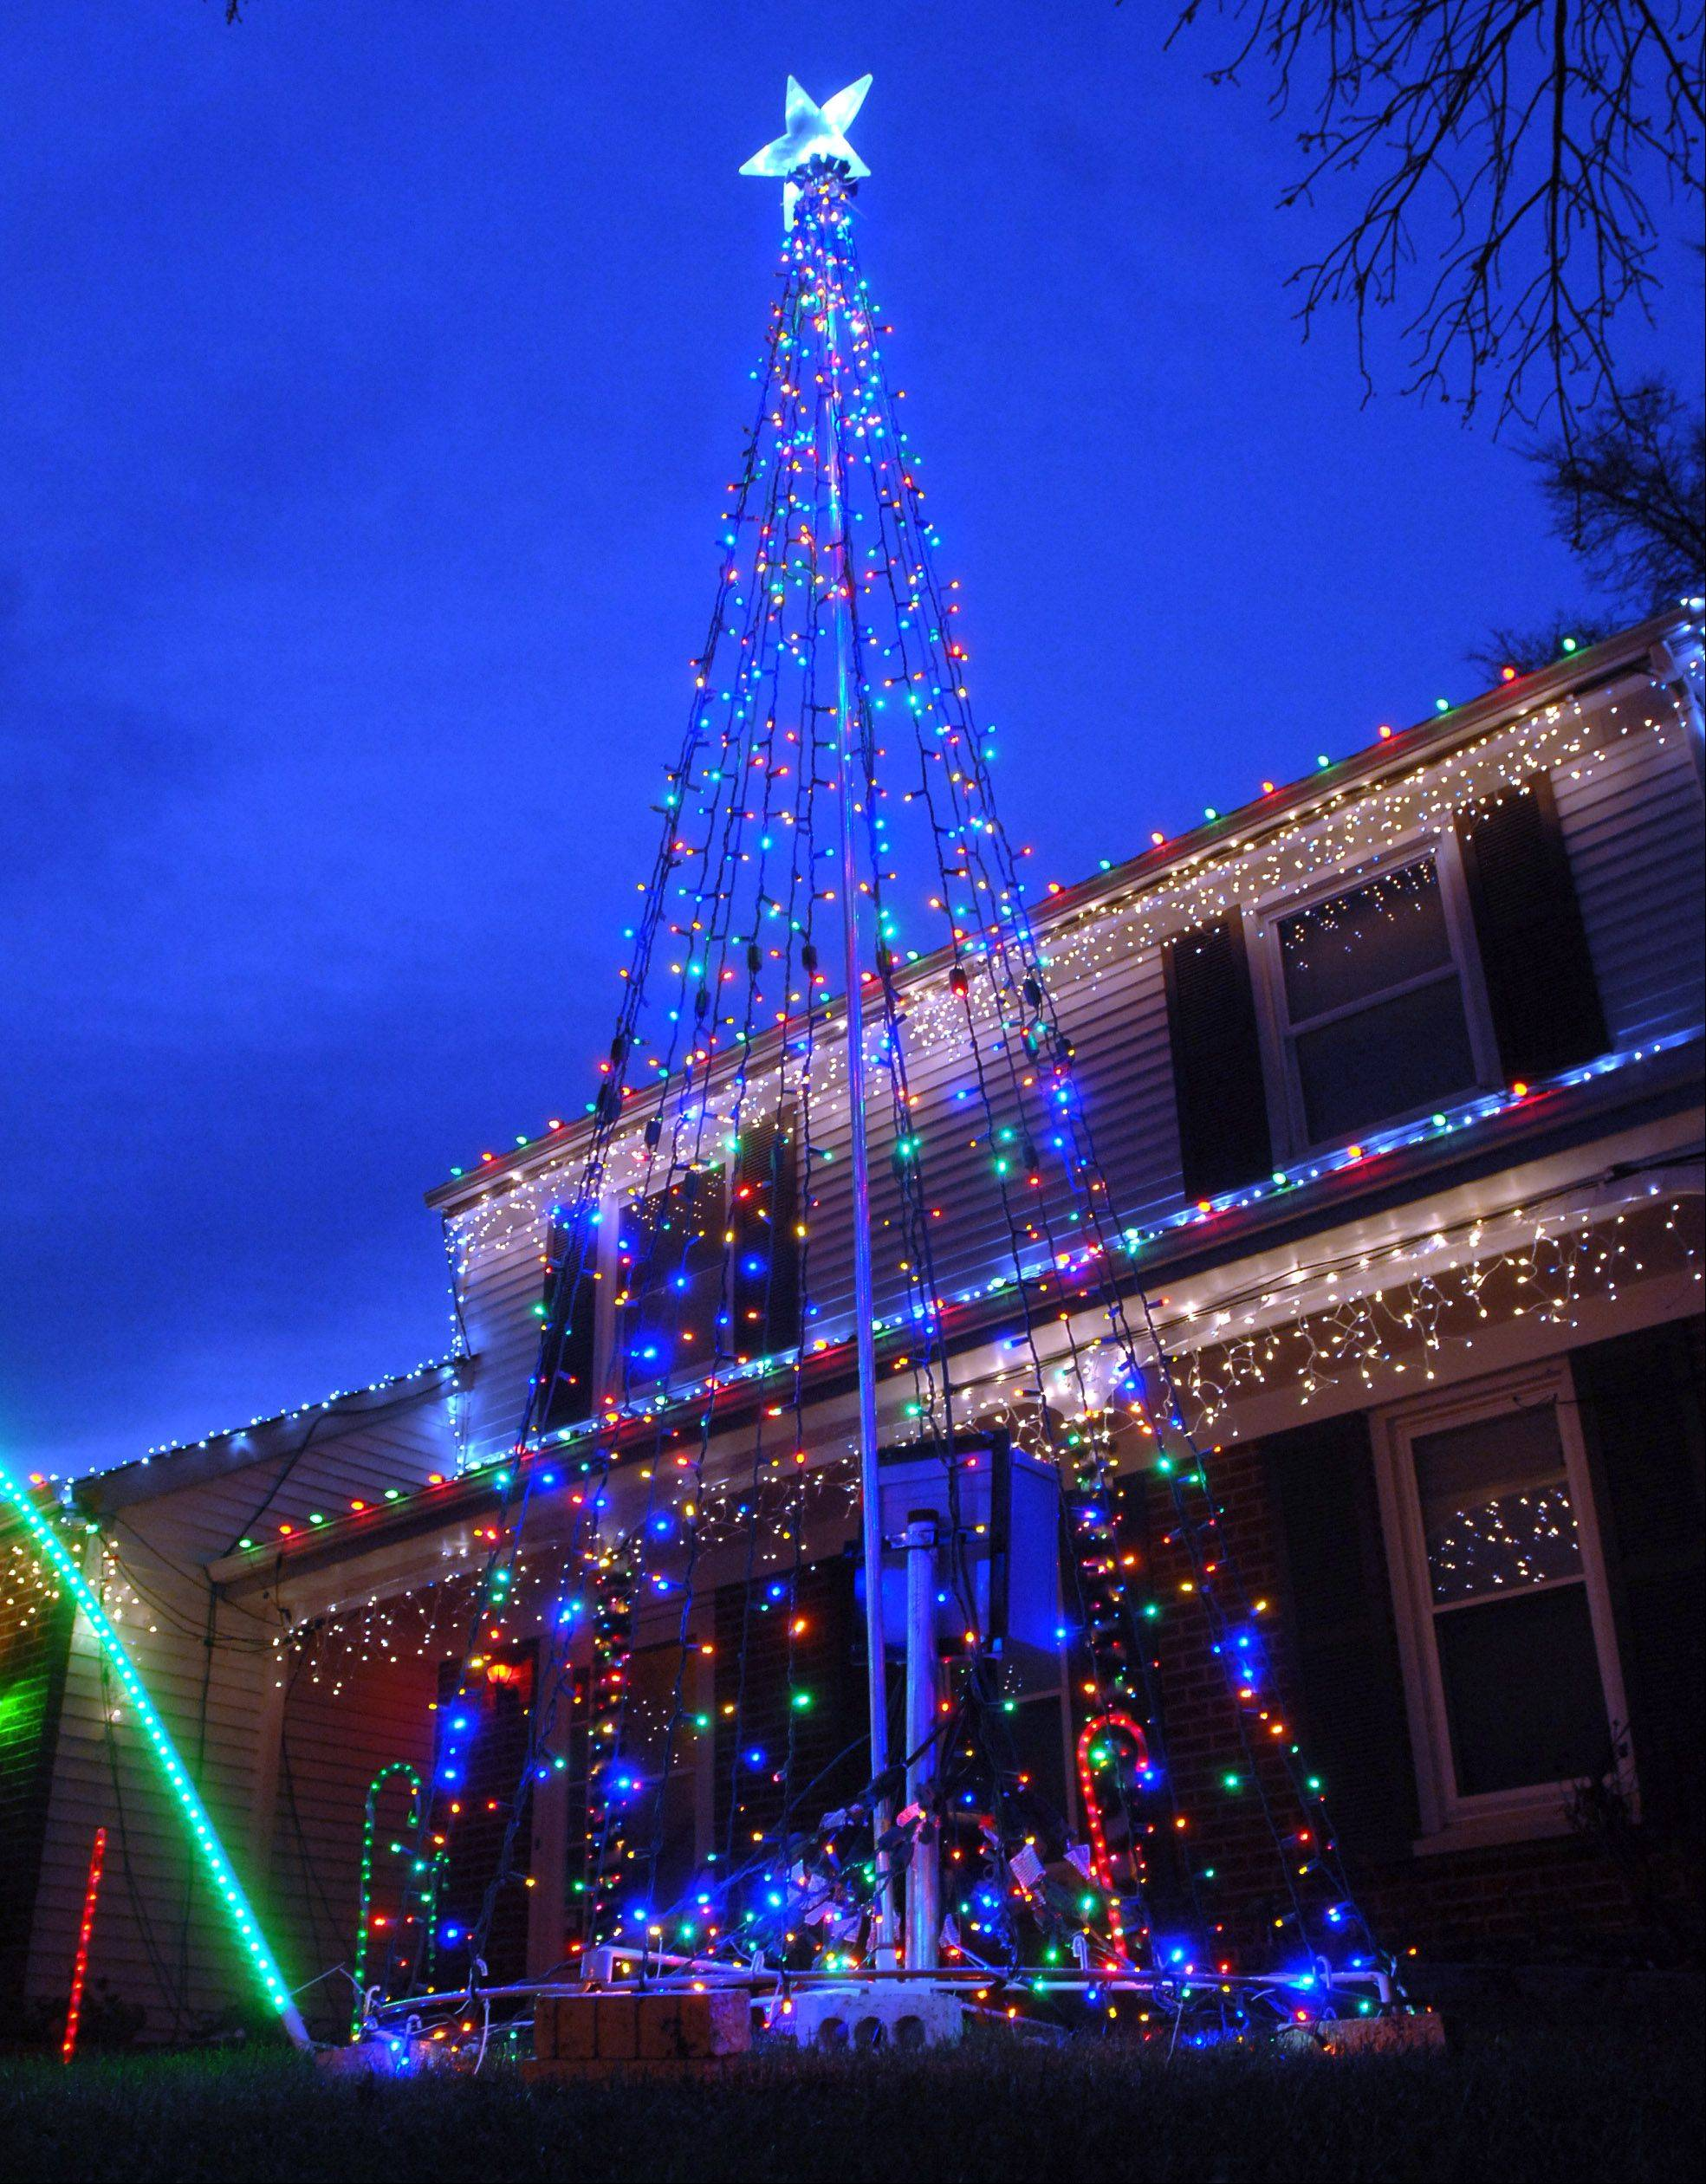 One of the lighted Christmas trees ready for action during the music-synchronized Christmas Light Show.